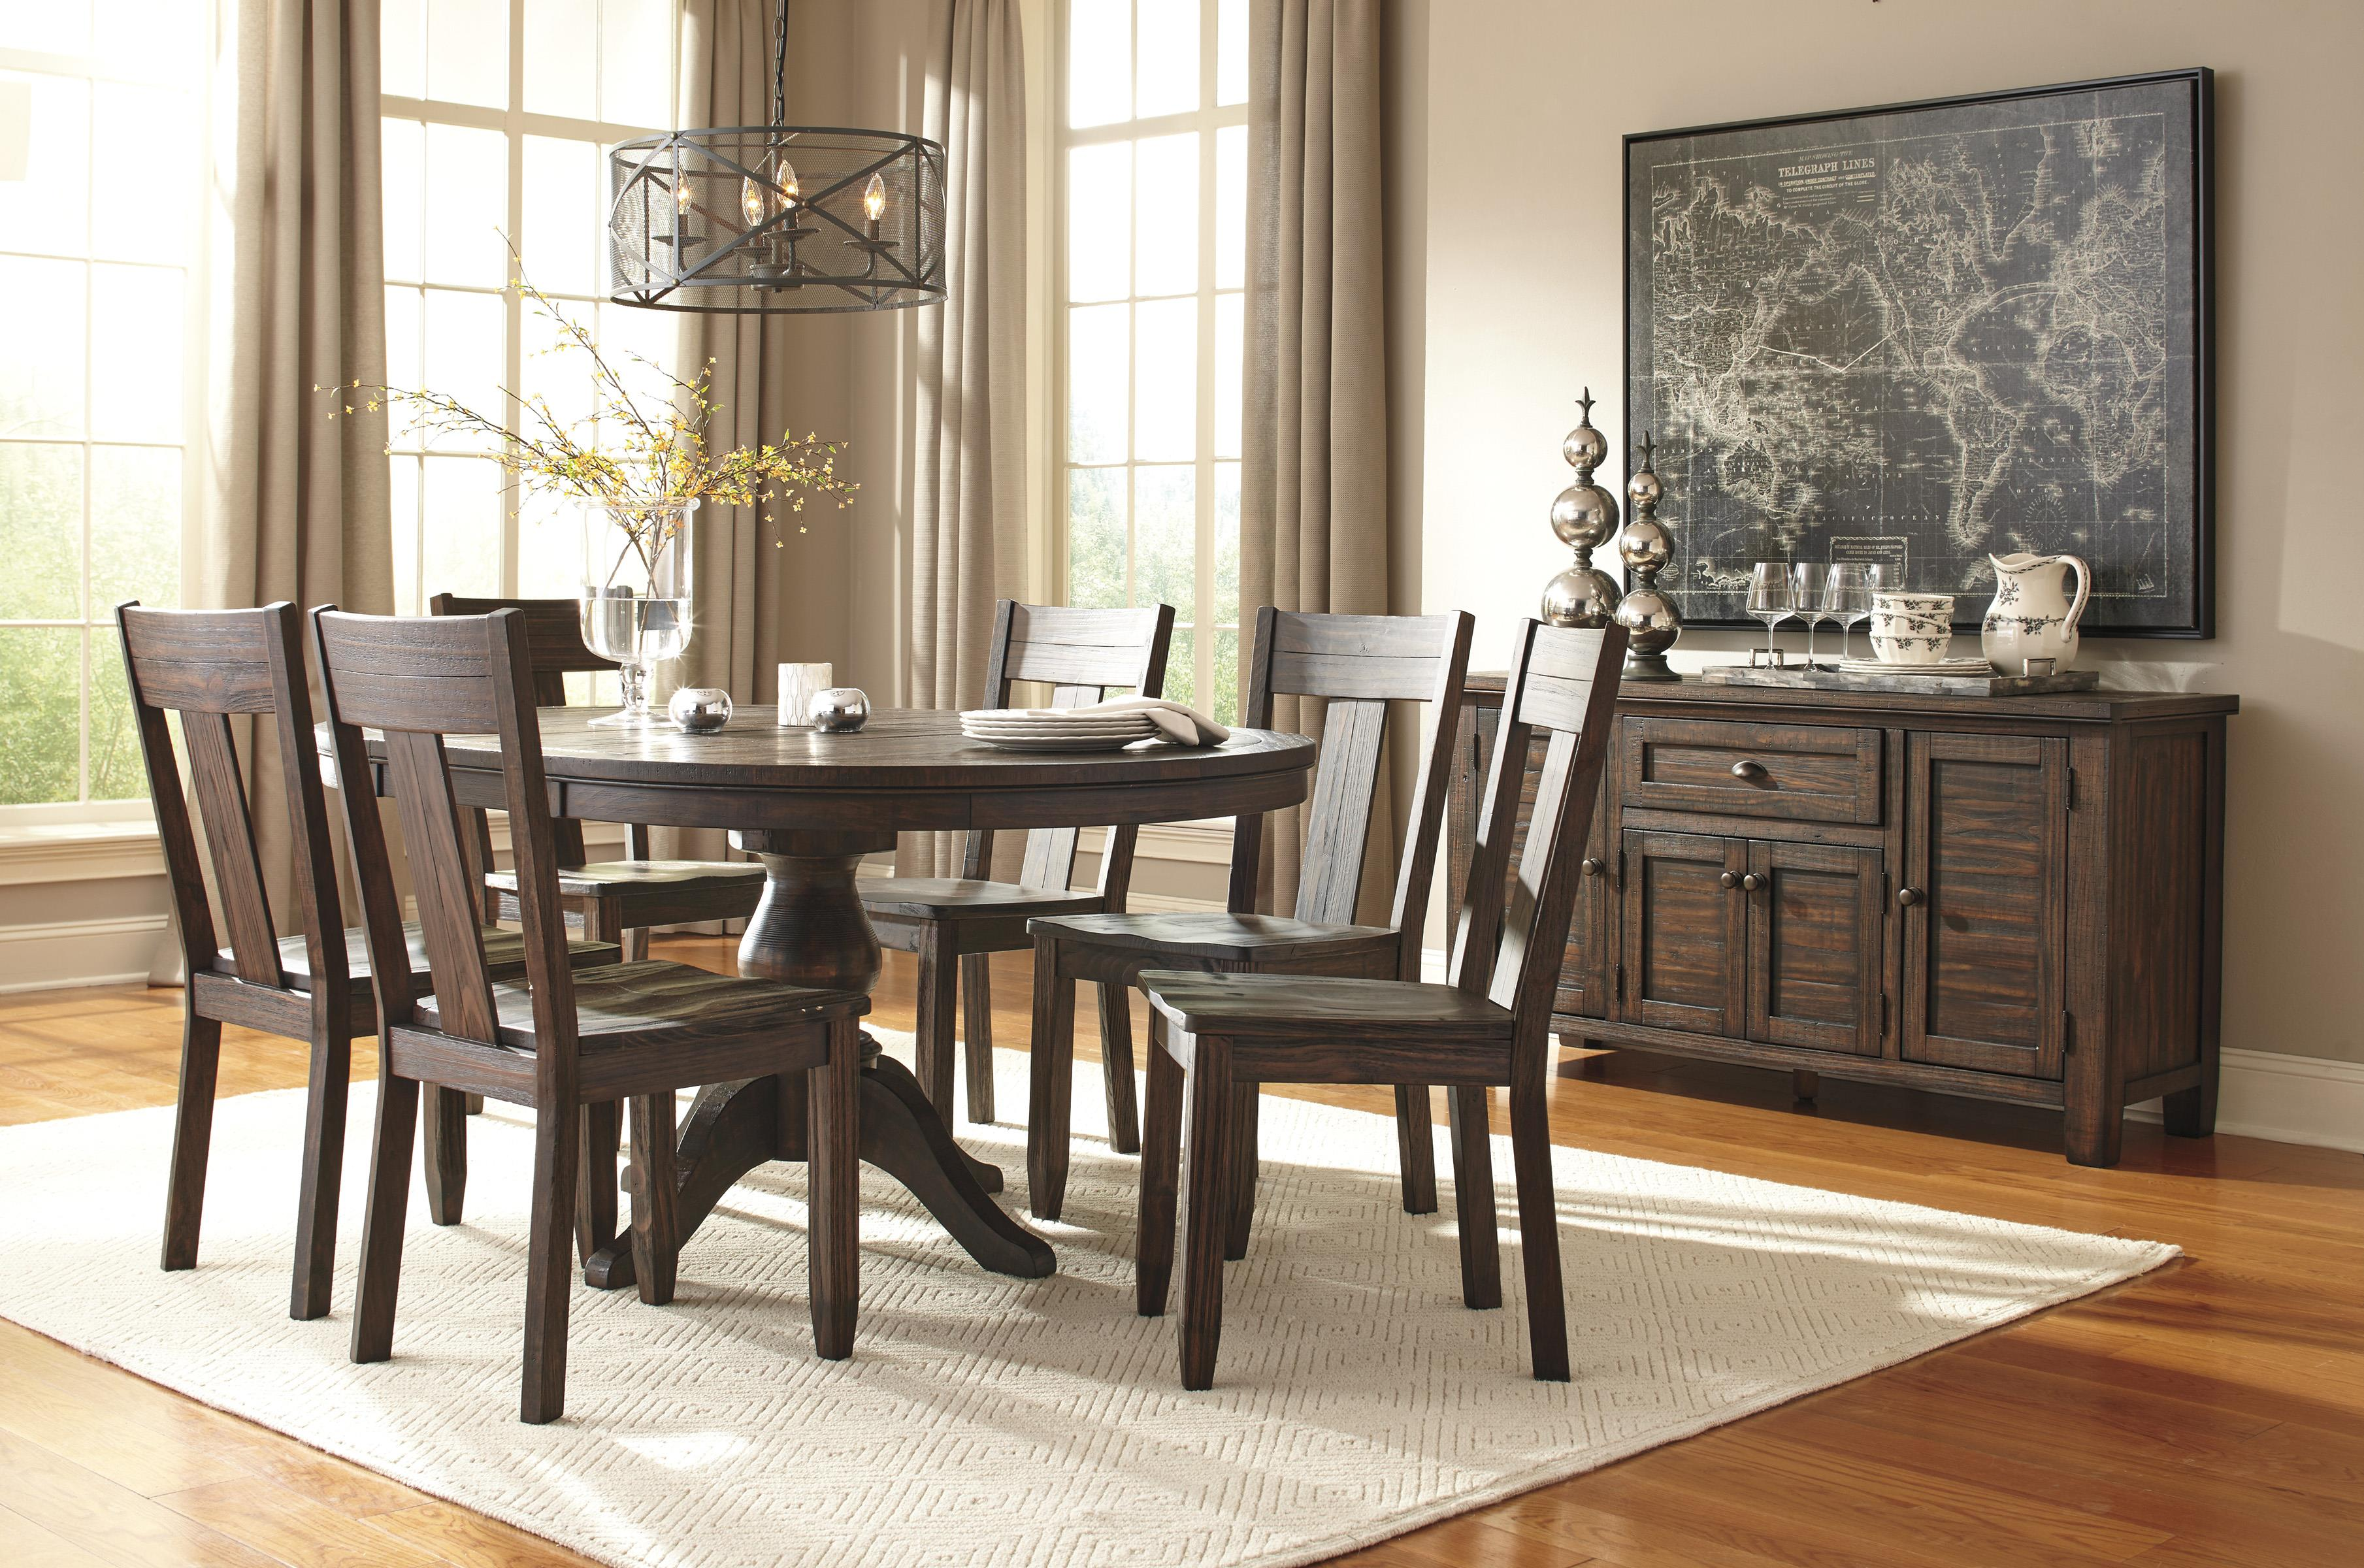 Signature Design by Ashley Trudell Casual Dining Room Group - Item Number: D658 Dining Room Group 3